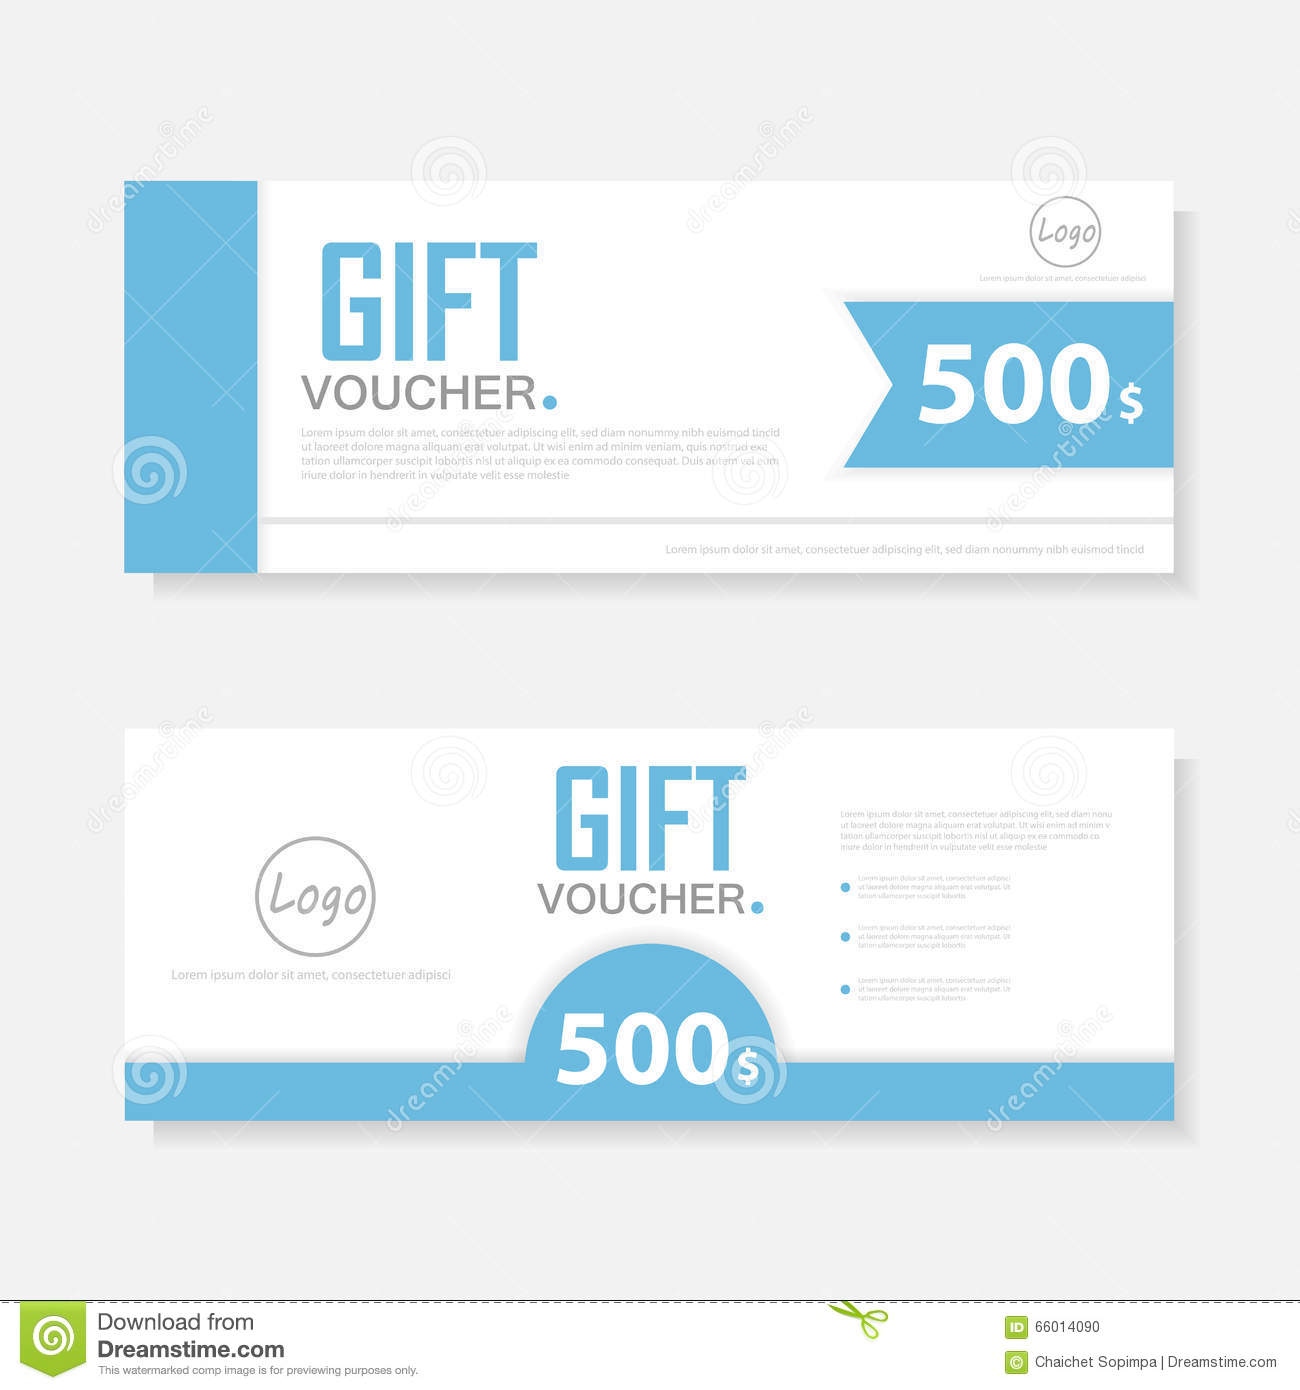 Blue Gift Voucher Template With Colorful Patterncute Gift Voucher